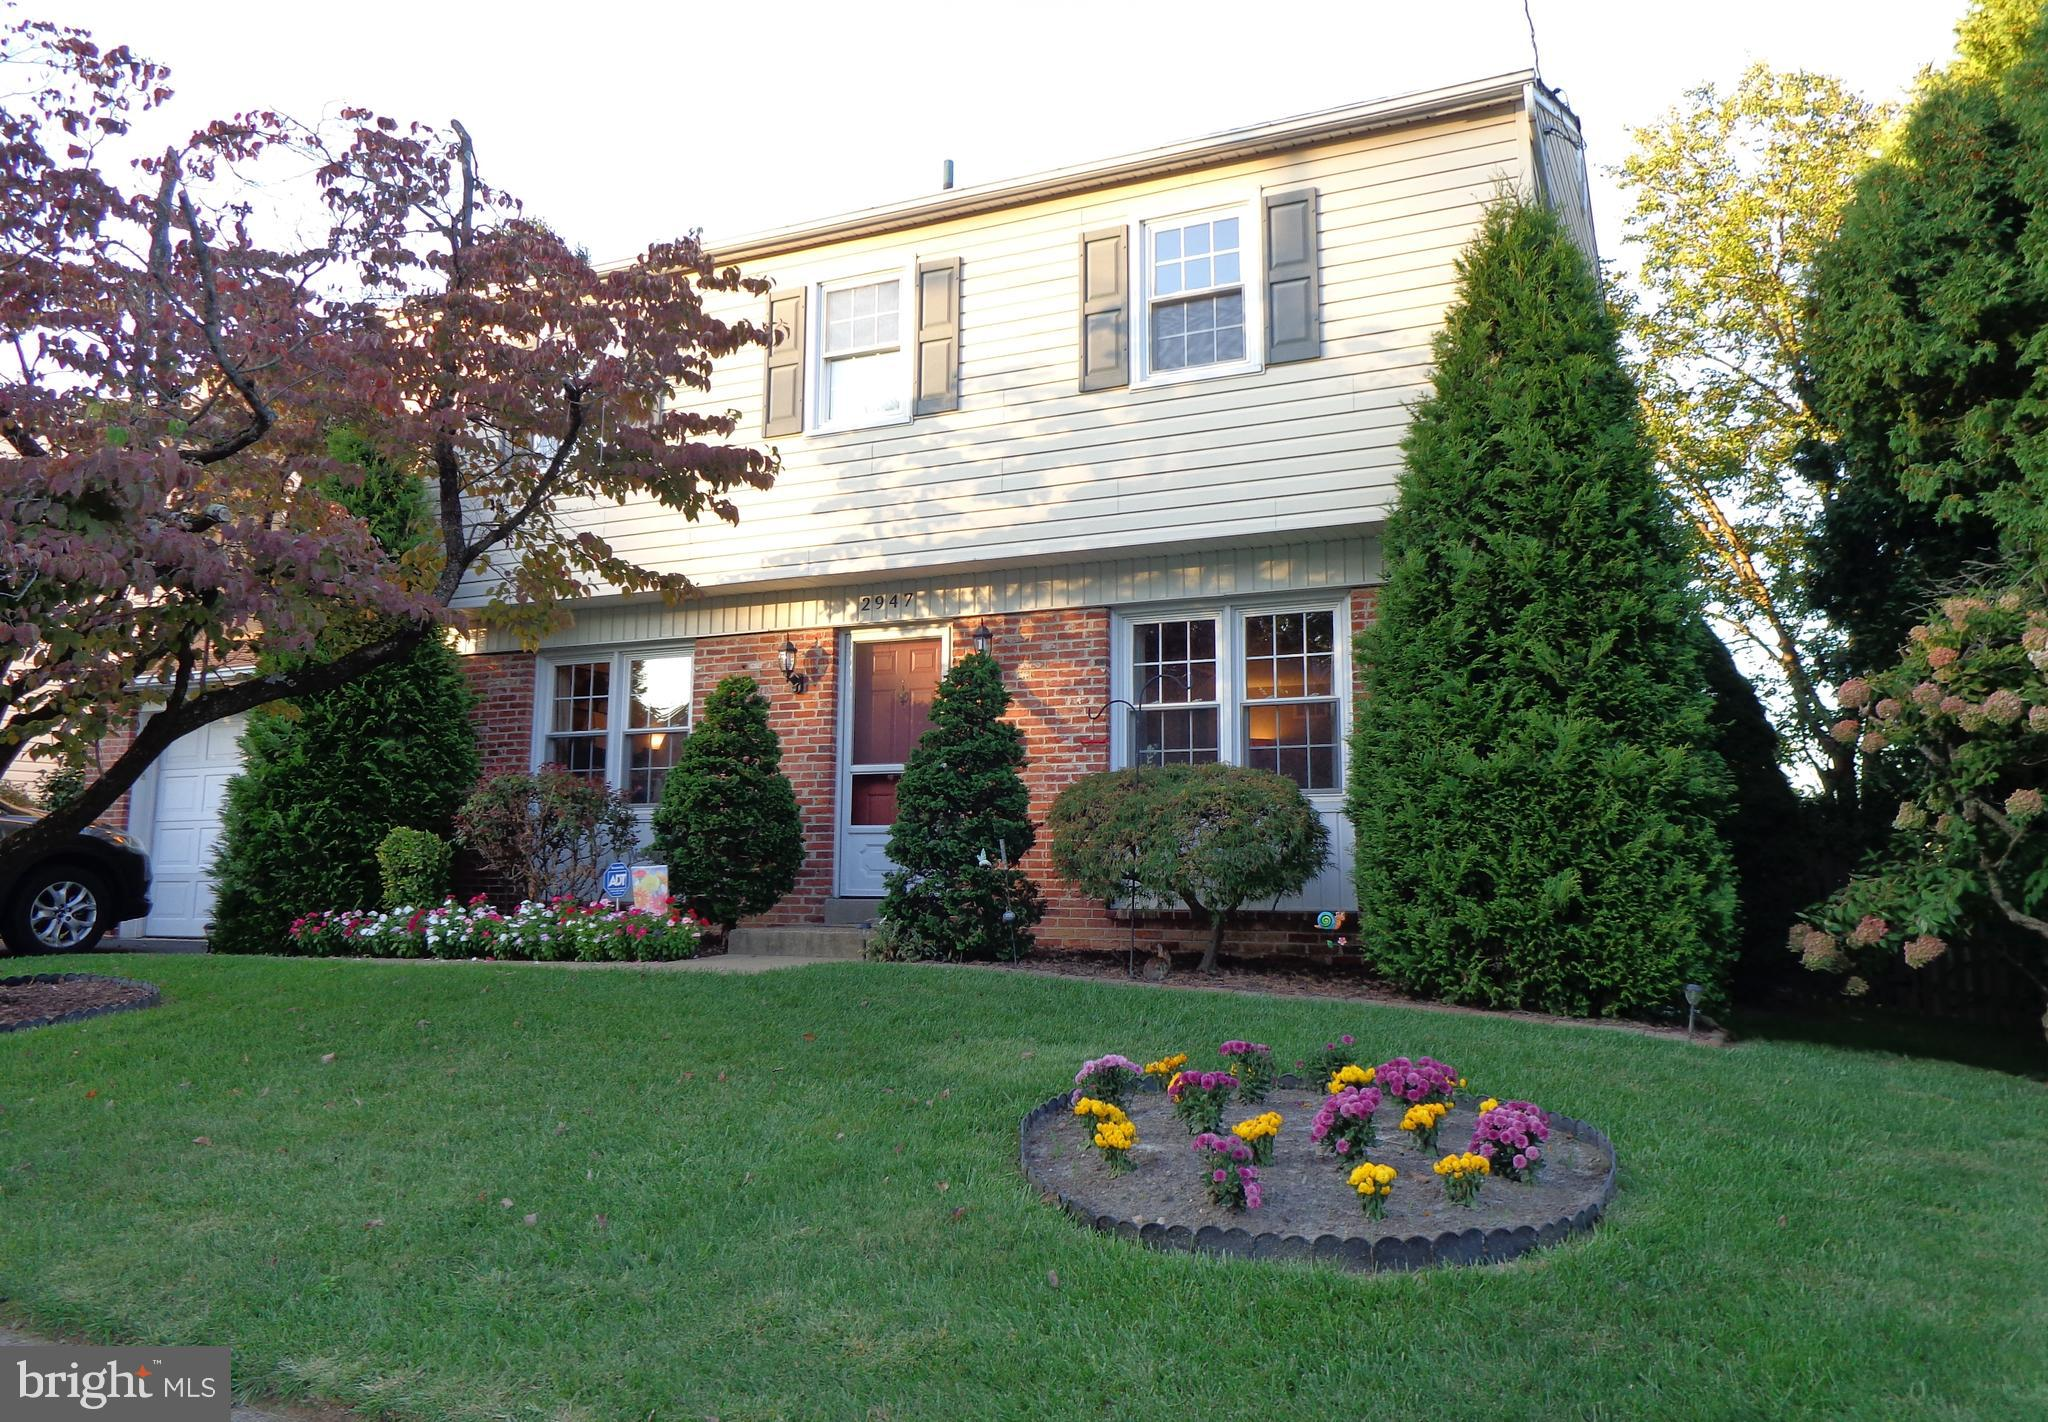 2947 CARNATION AVENUE, WILLOW GROVE, PA 19090